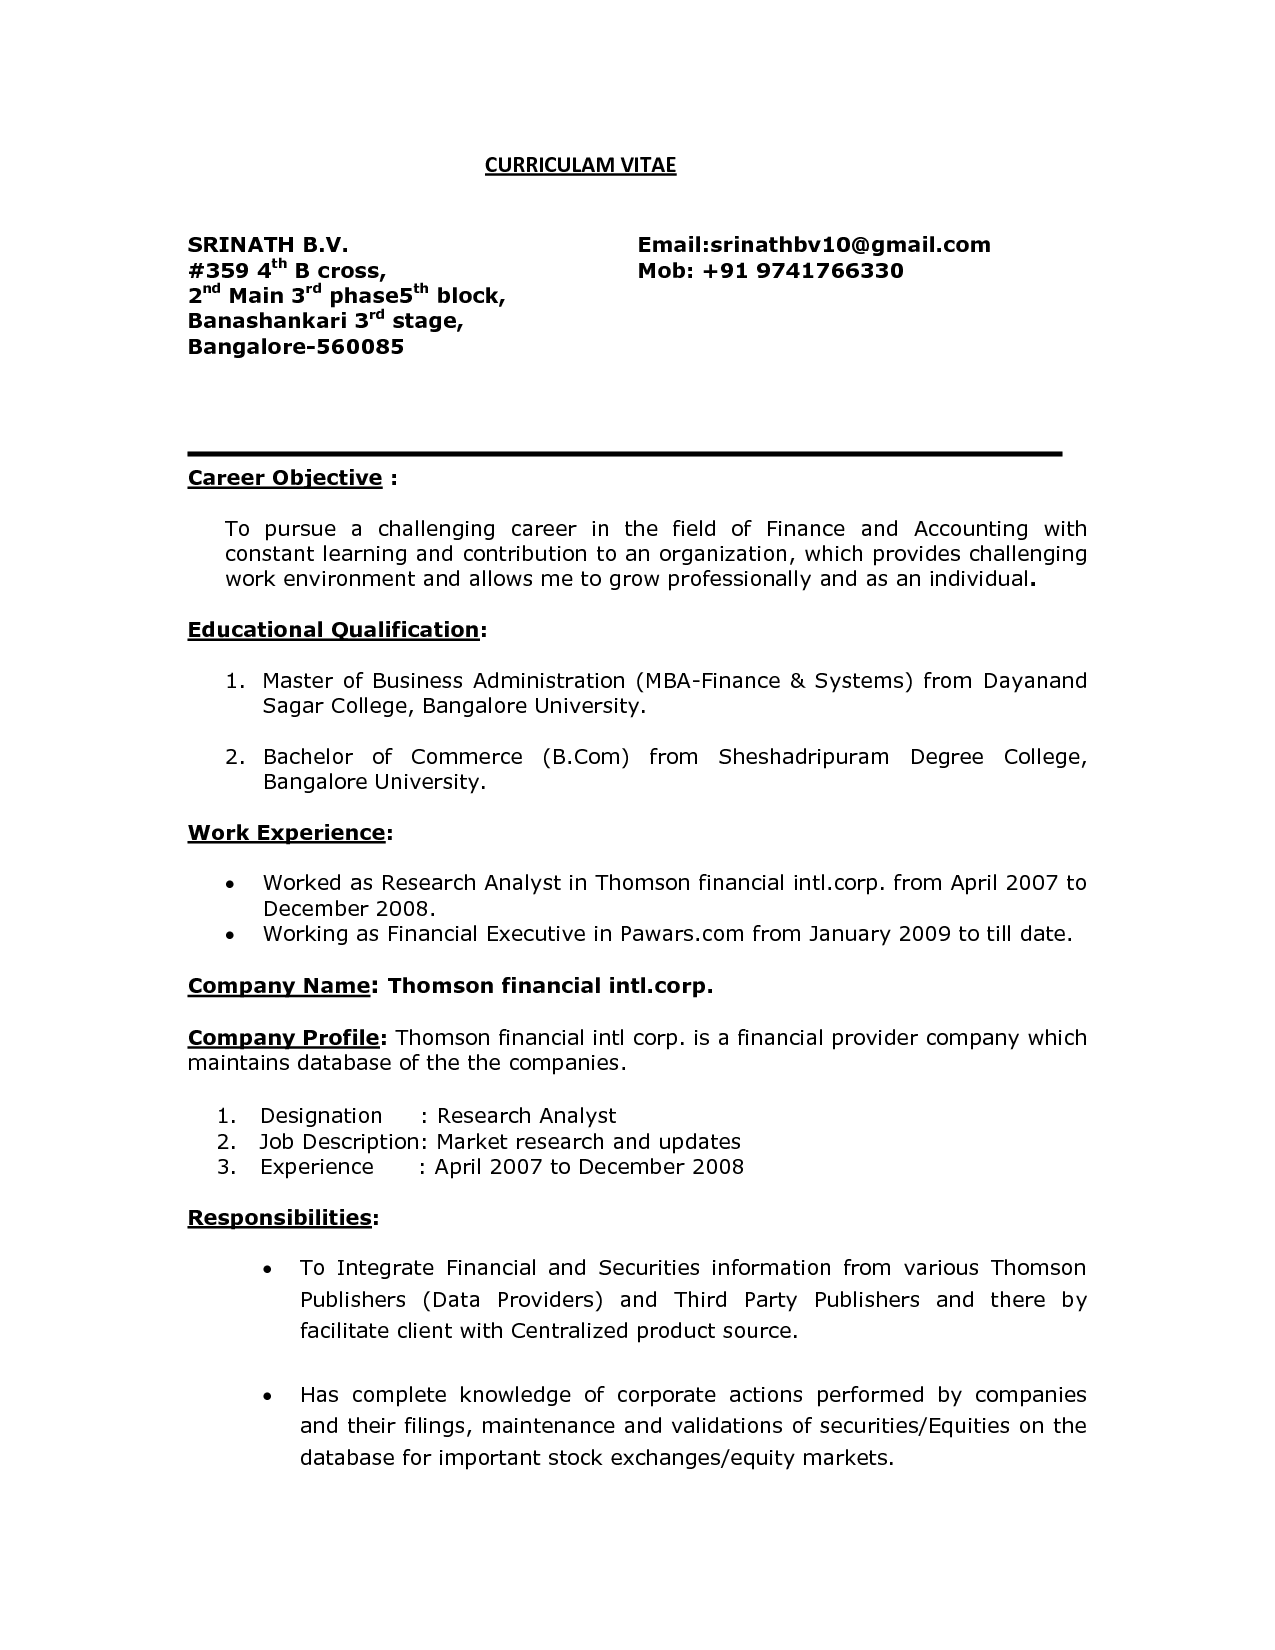 Entry Level career objective for resume for fresher in Reserach Analyst